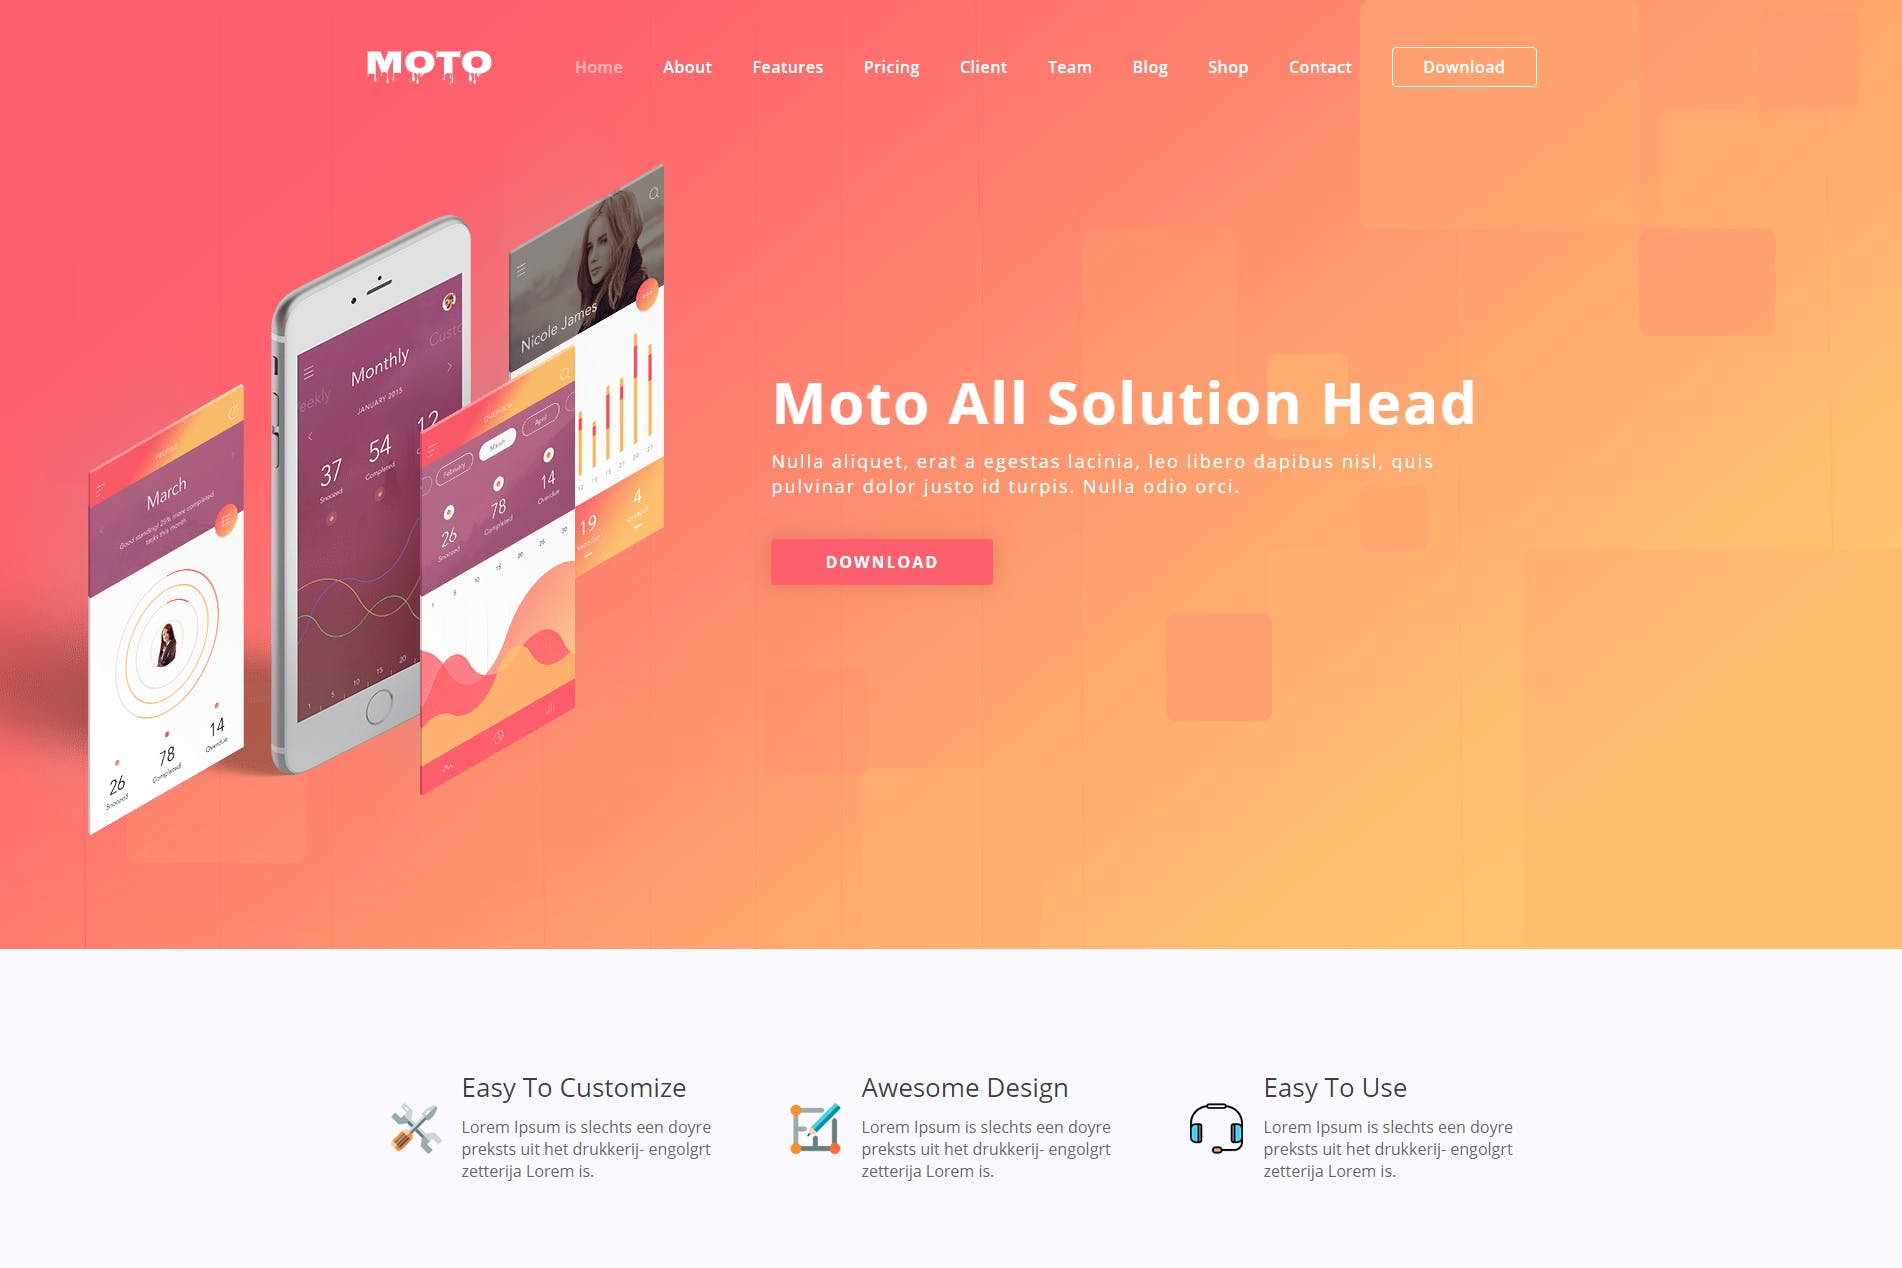 Moto Wordpress Landing Page Theme By Codecarnival On Envato Elements